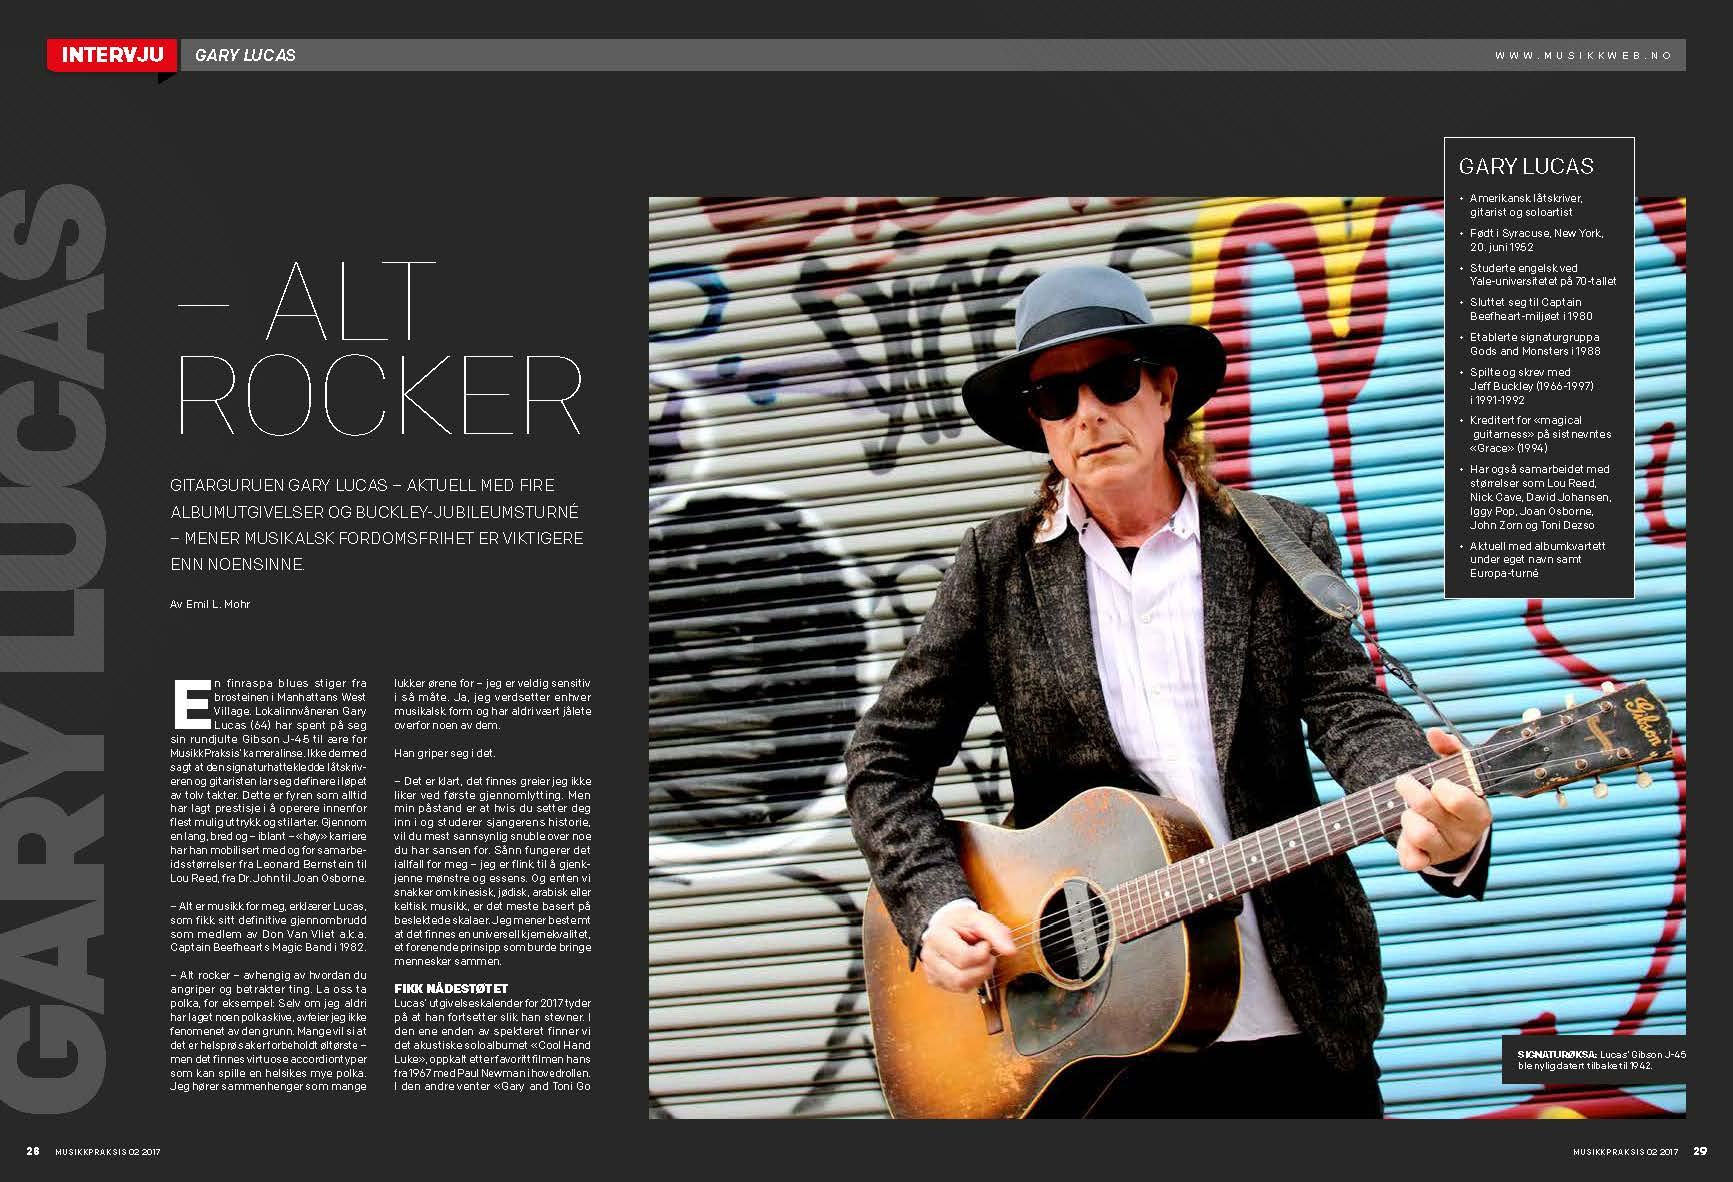 gary lucas official website